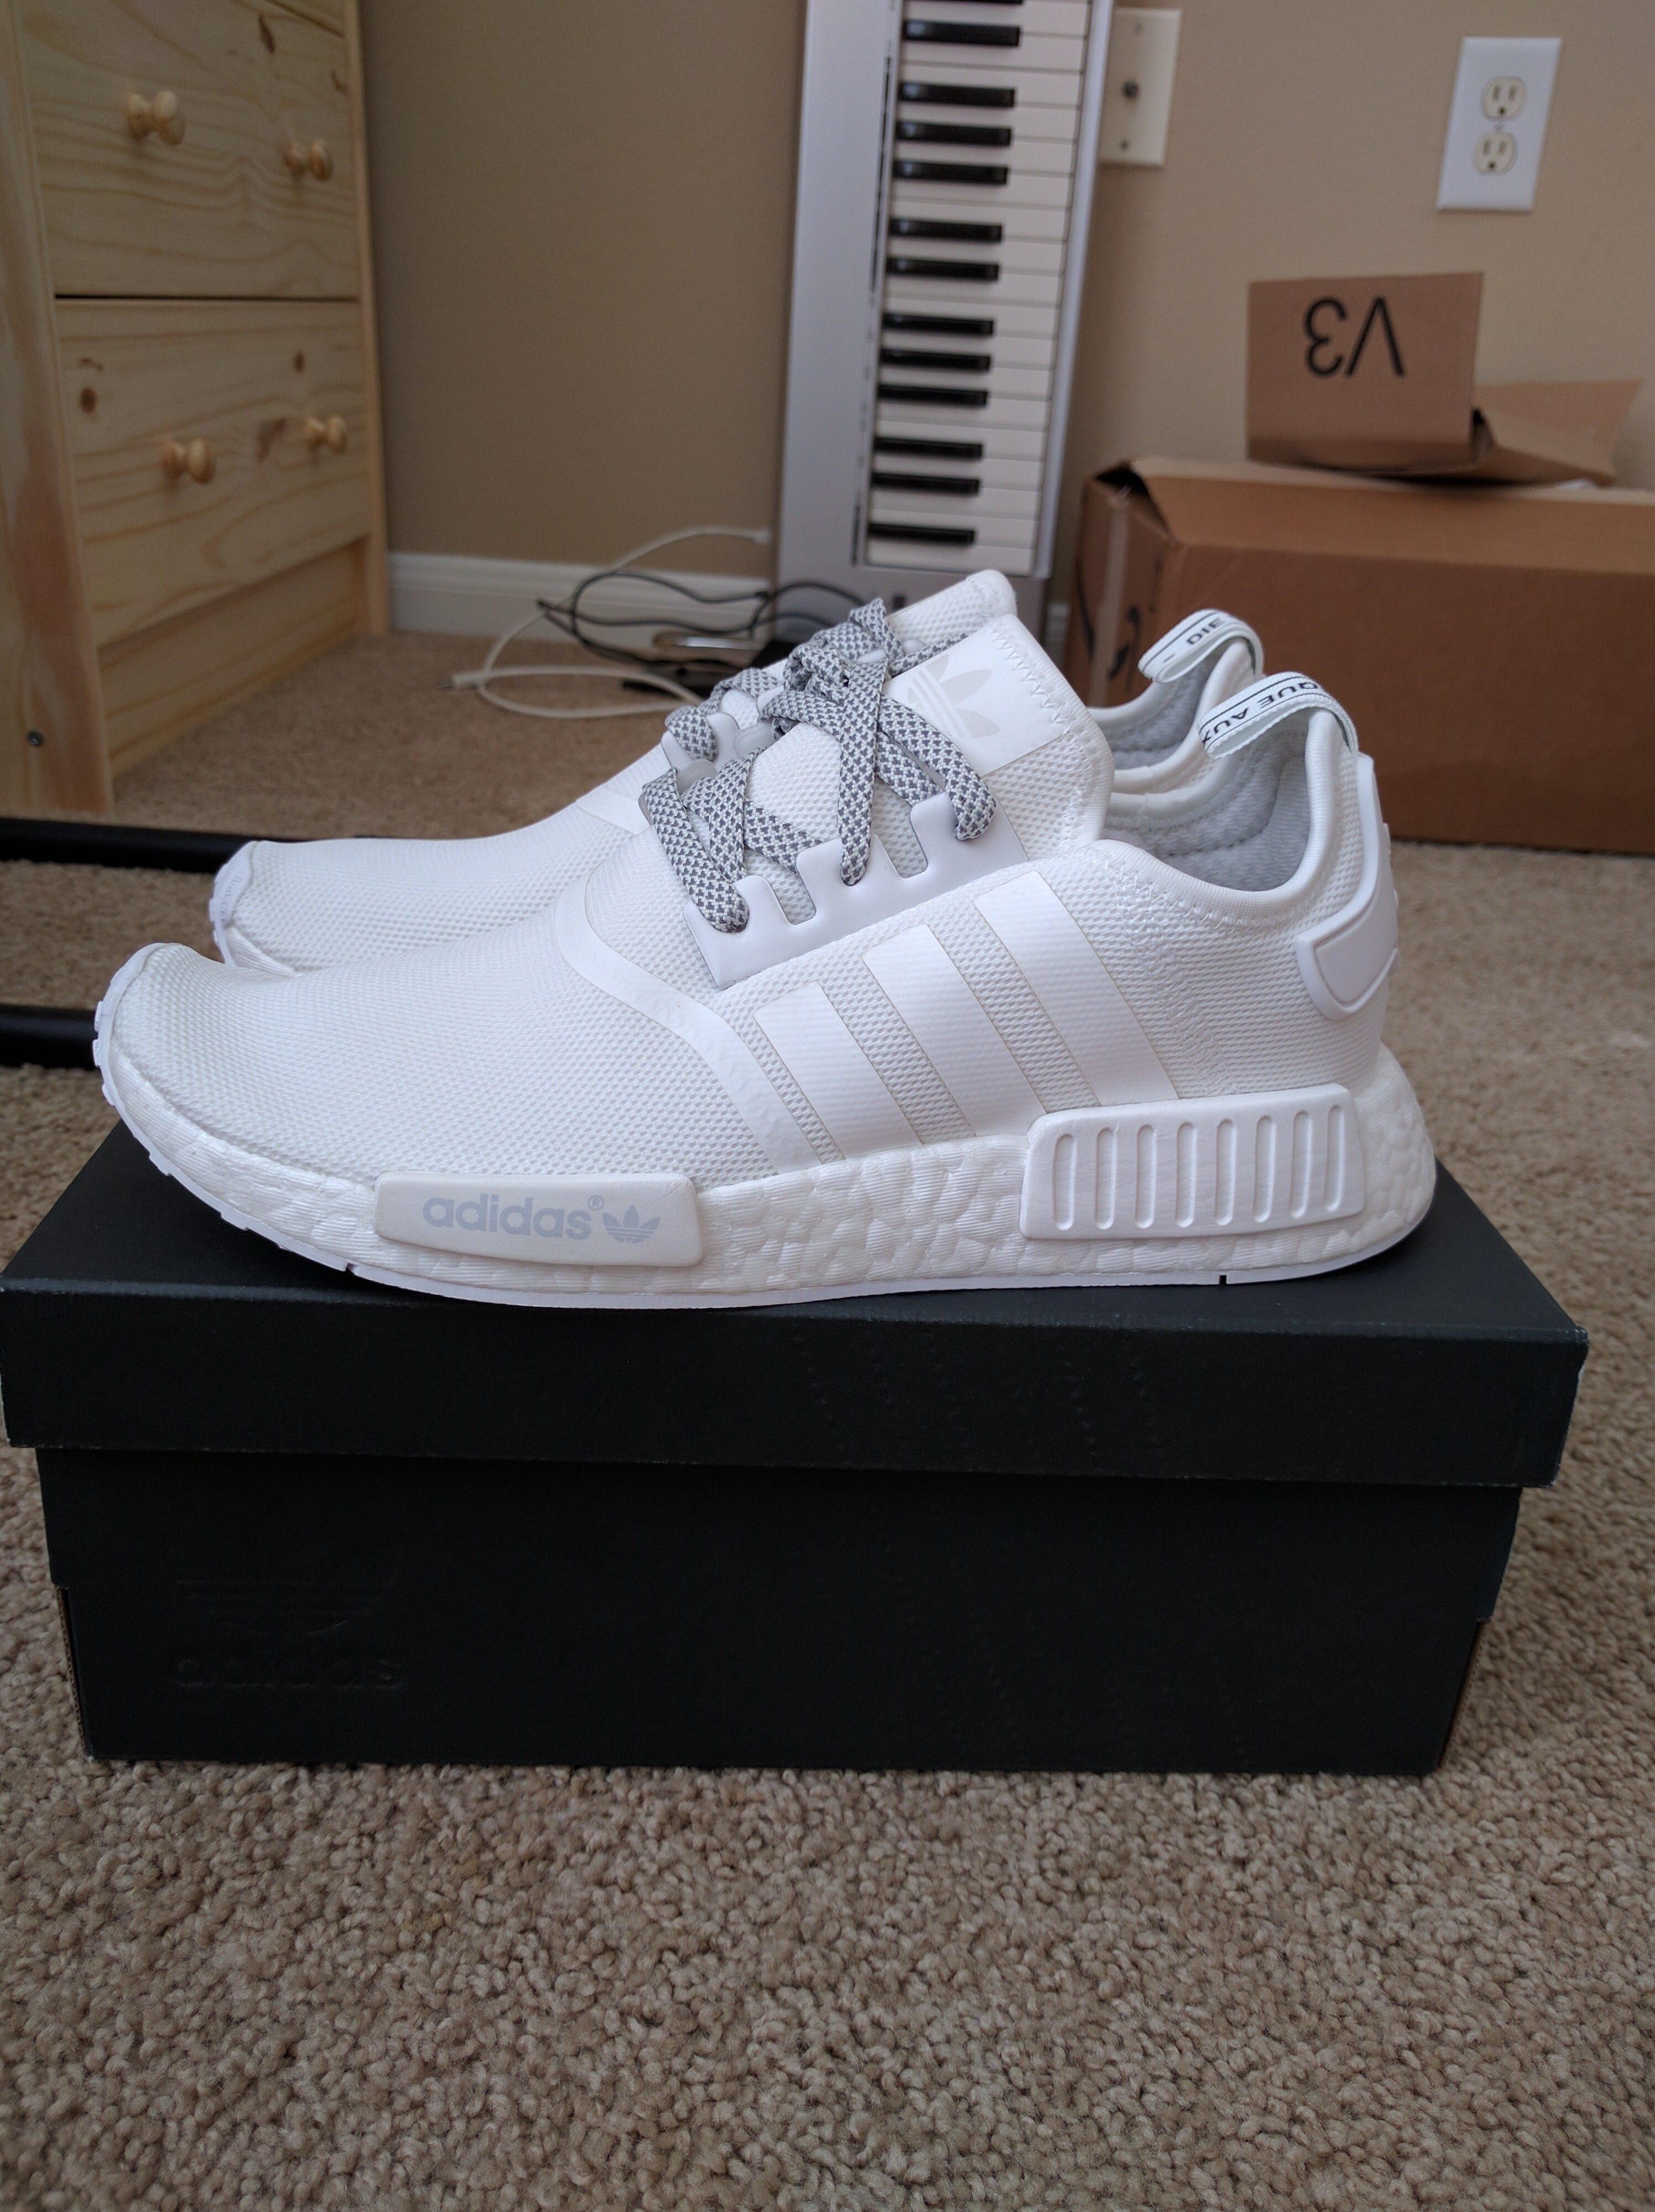 dfb40b79d5449 Adidas NMD R1 Triple White 3M Reflective S31506 Size 9 Size 9 - Low-Top  Sneakers for Sale - Grailed